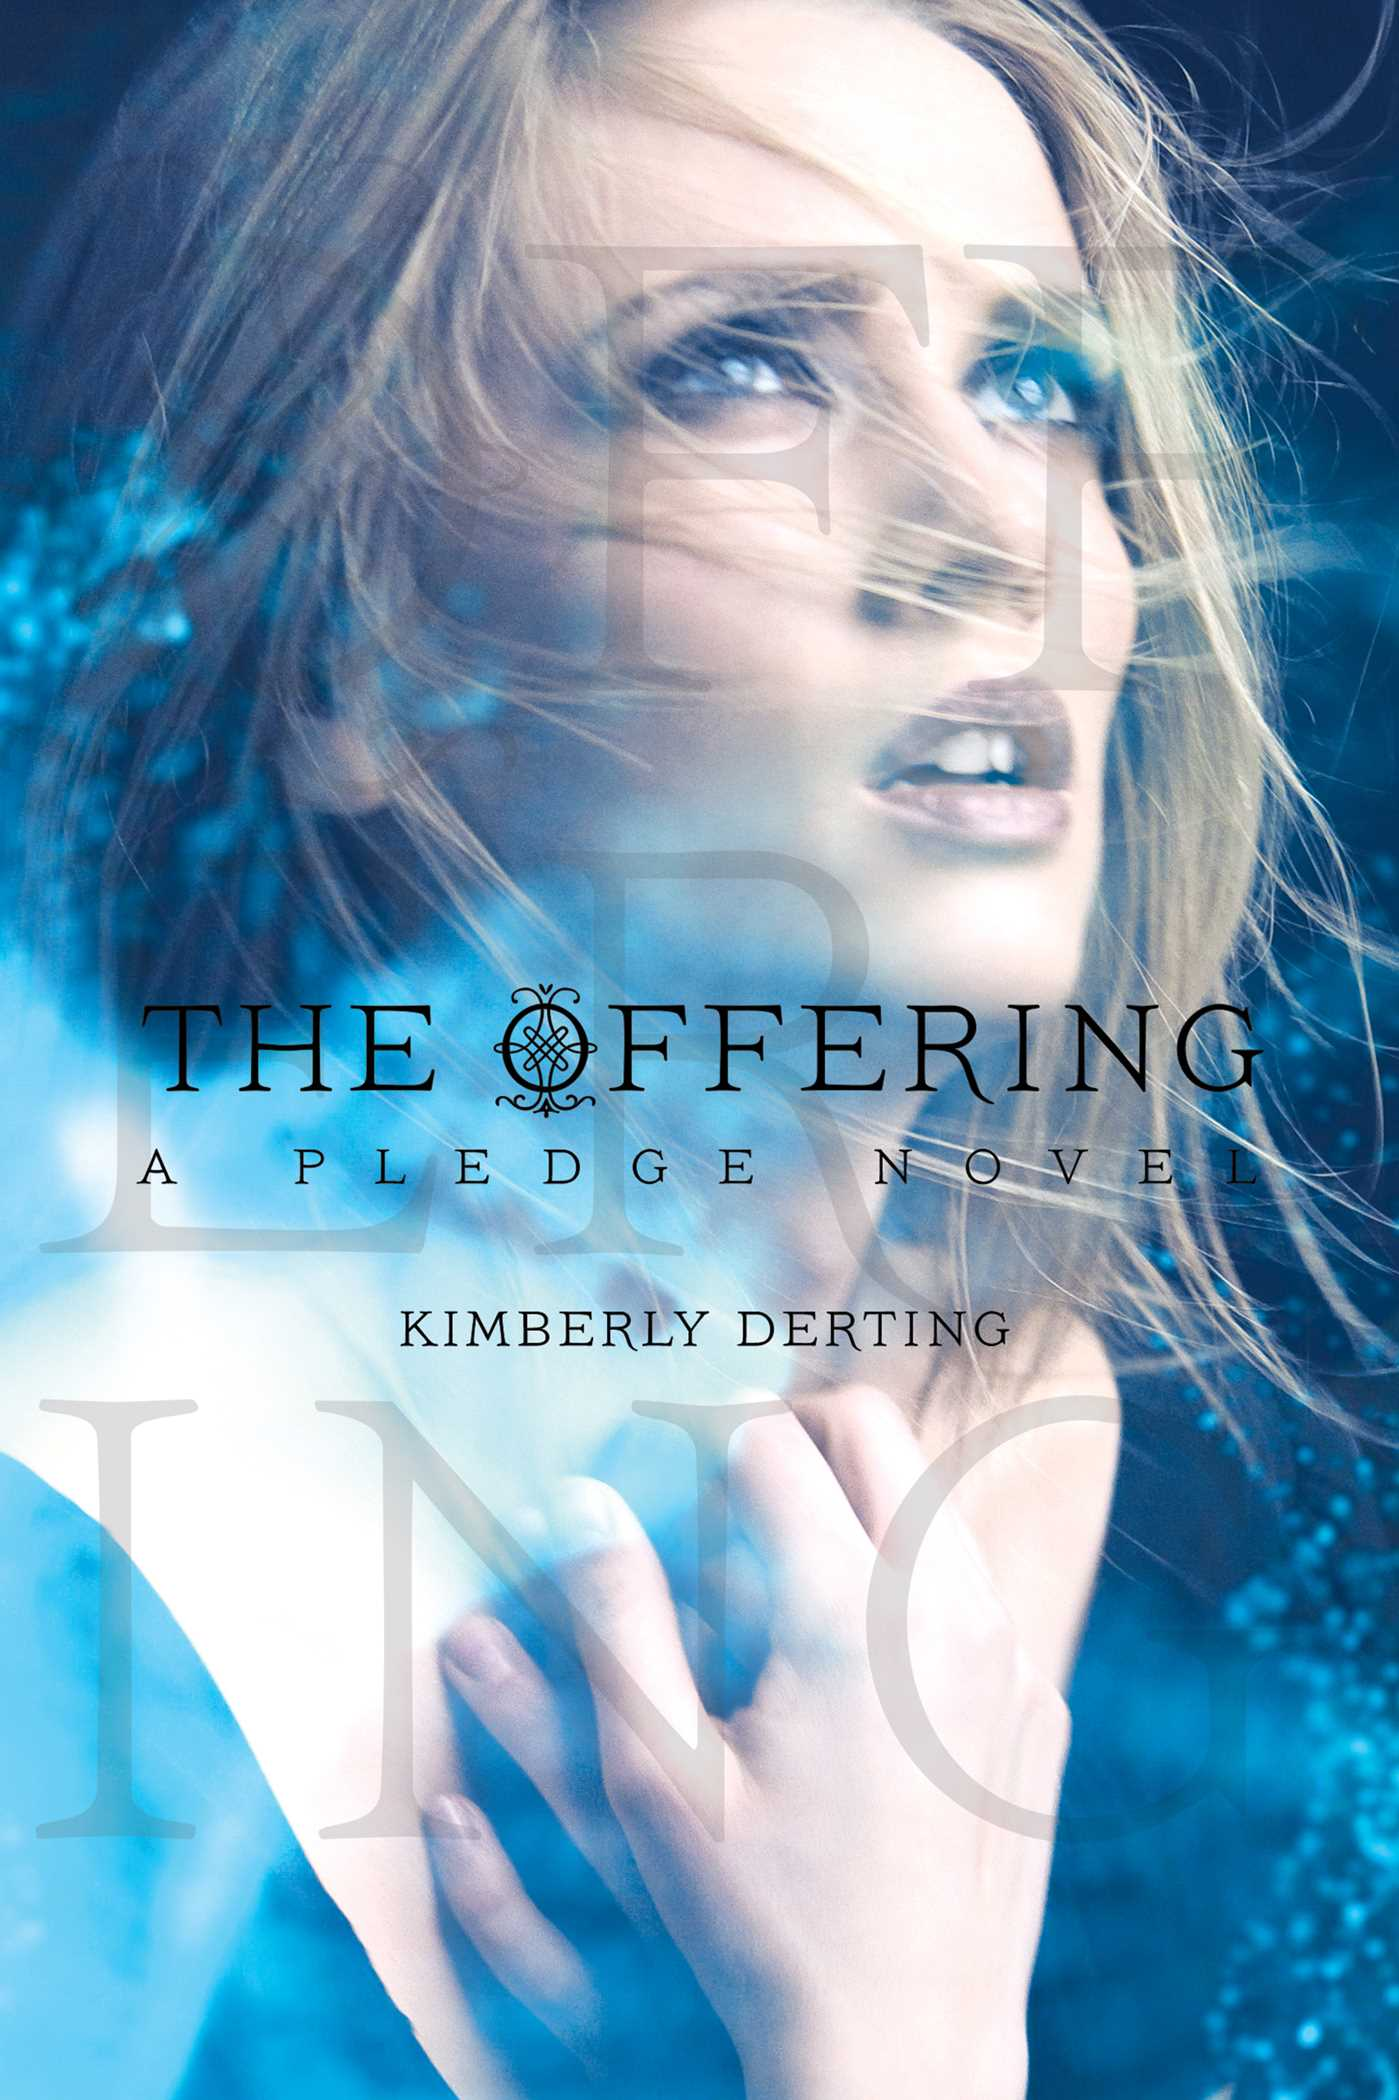 Resultado de imagen para The offering- Kimberly Derting